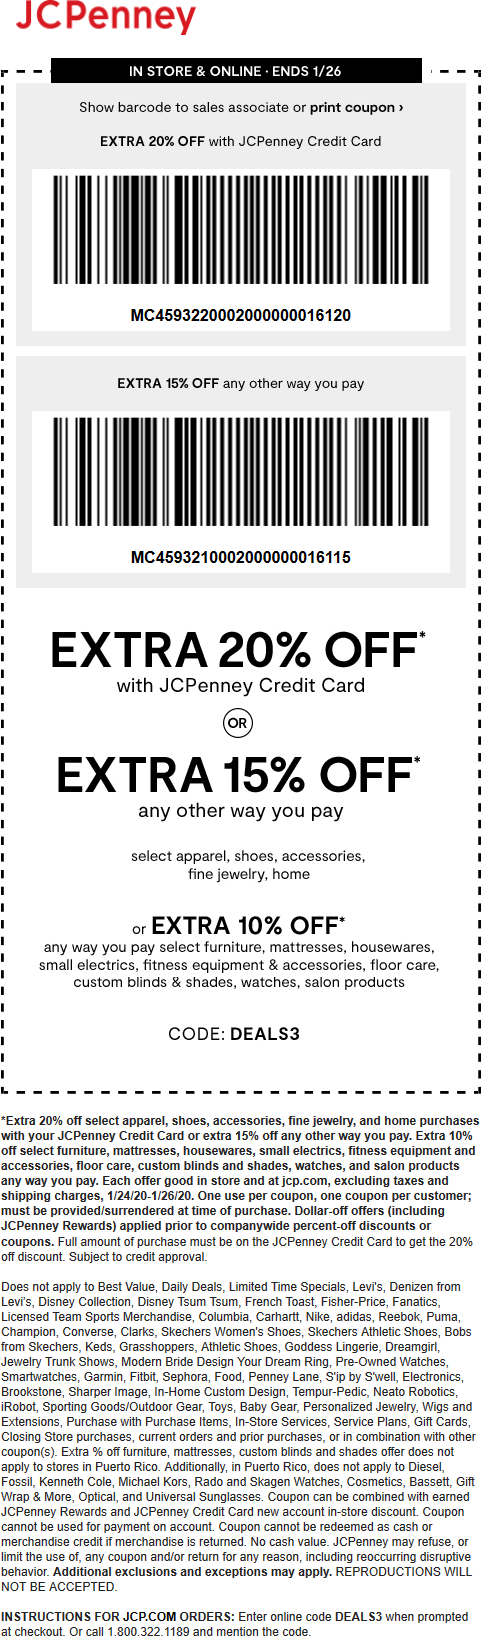 JCPenney coupons & promo code for [October 2020]